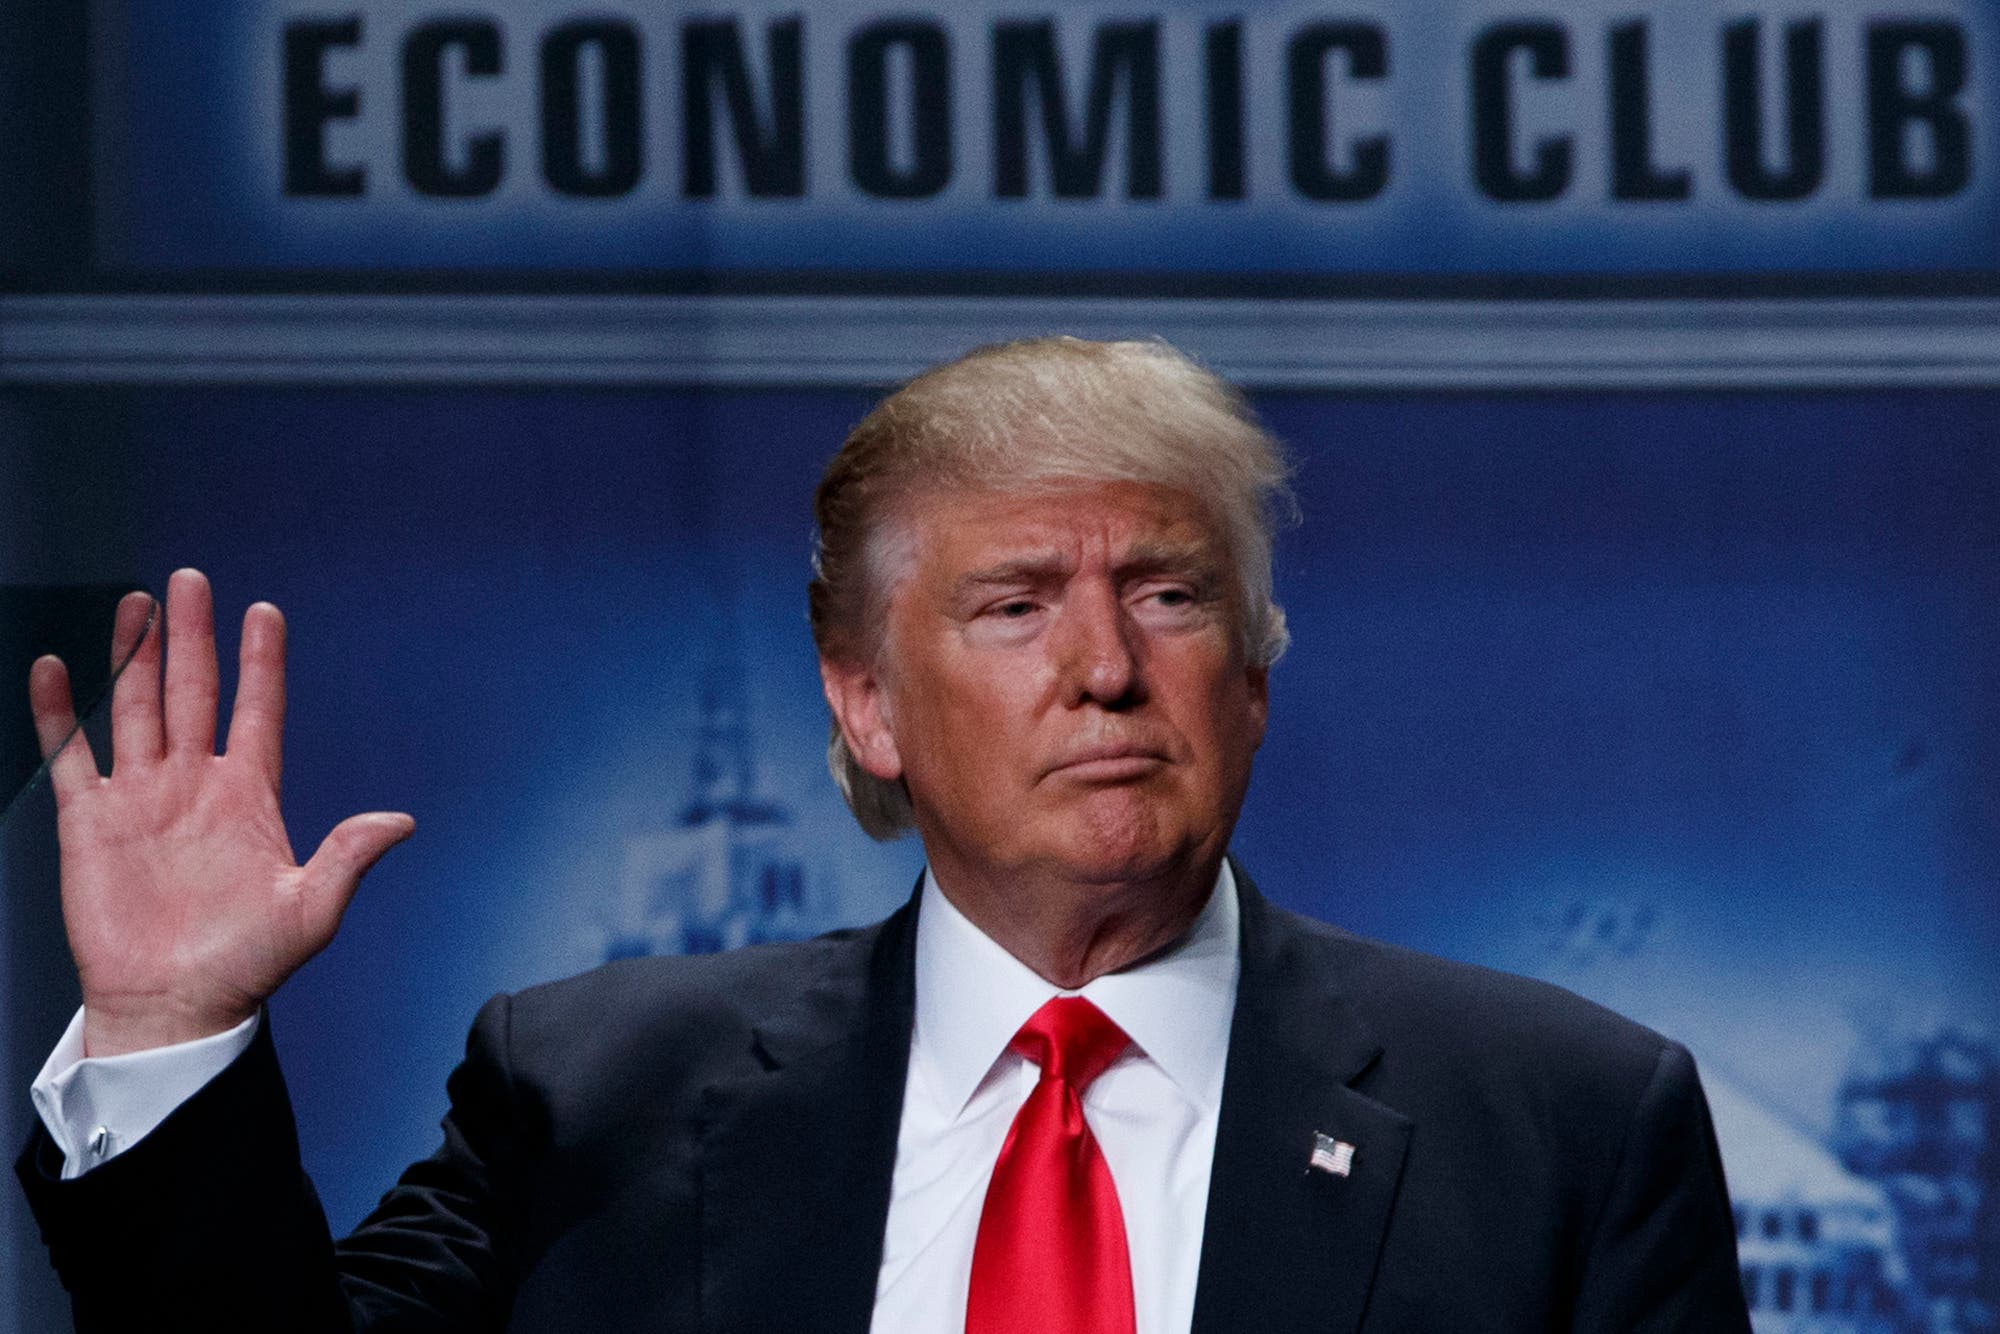 epublican presidential candidate Donald Trump waves after delivering an economic policy speech to the Detroit Economic Club, Monday, Aug. 8, 2016, in Detroit. (AP)